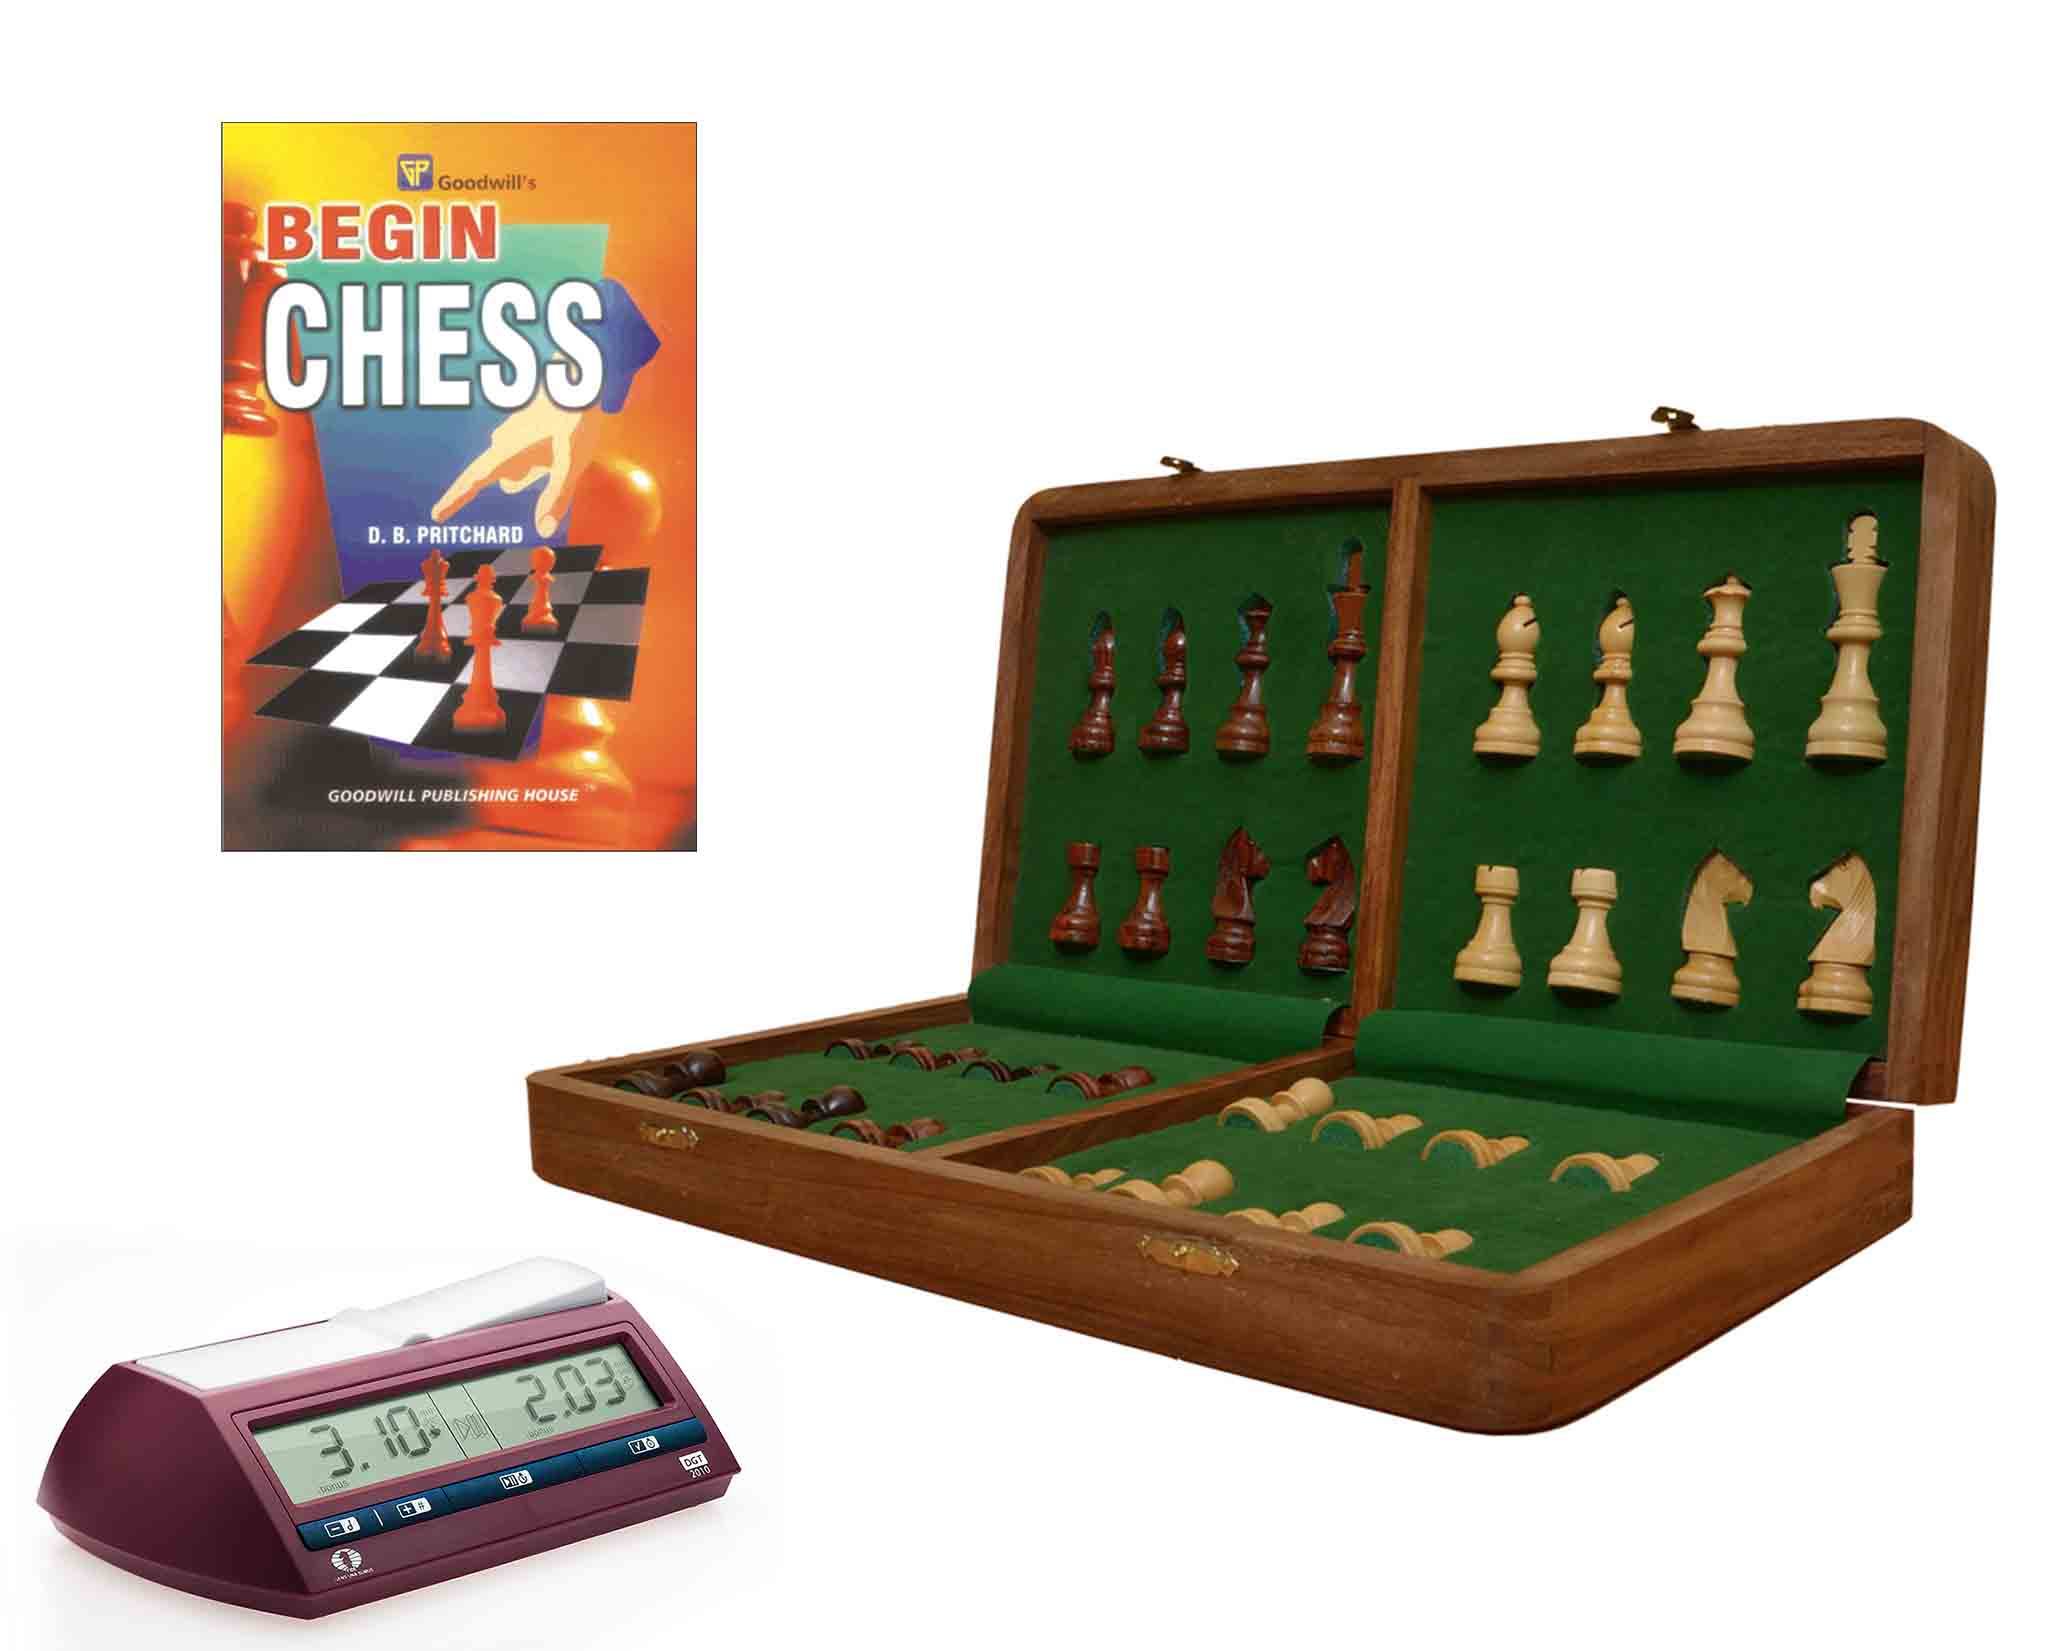 Travel Series Starter Chess Learning Kit with DGT Chess Clock & Free Chess Book